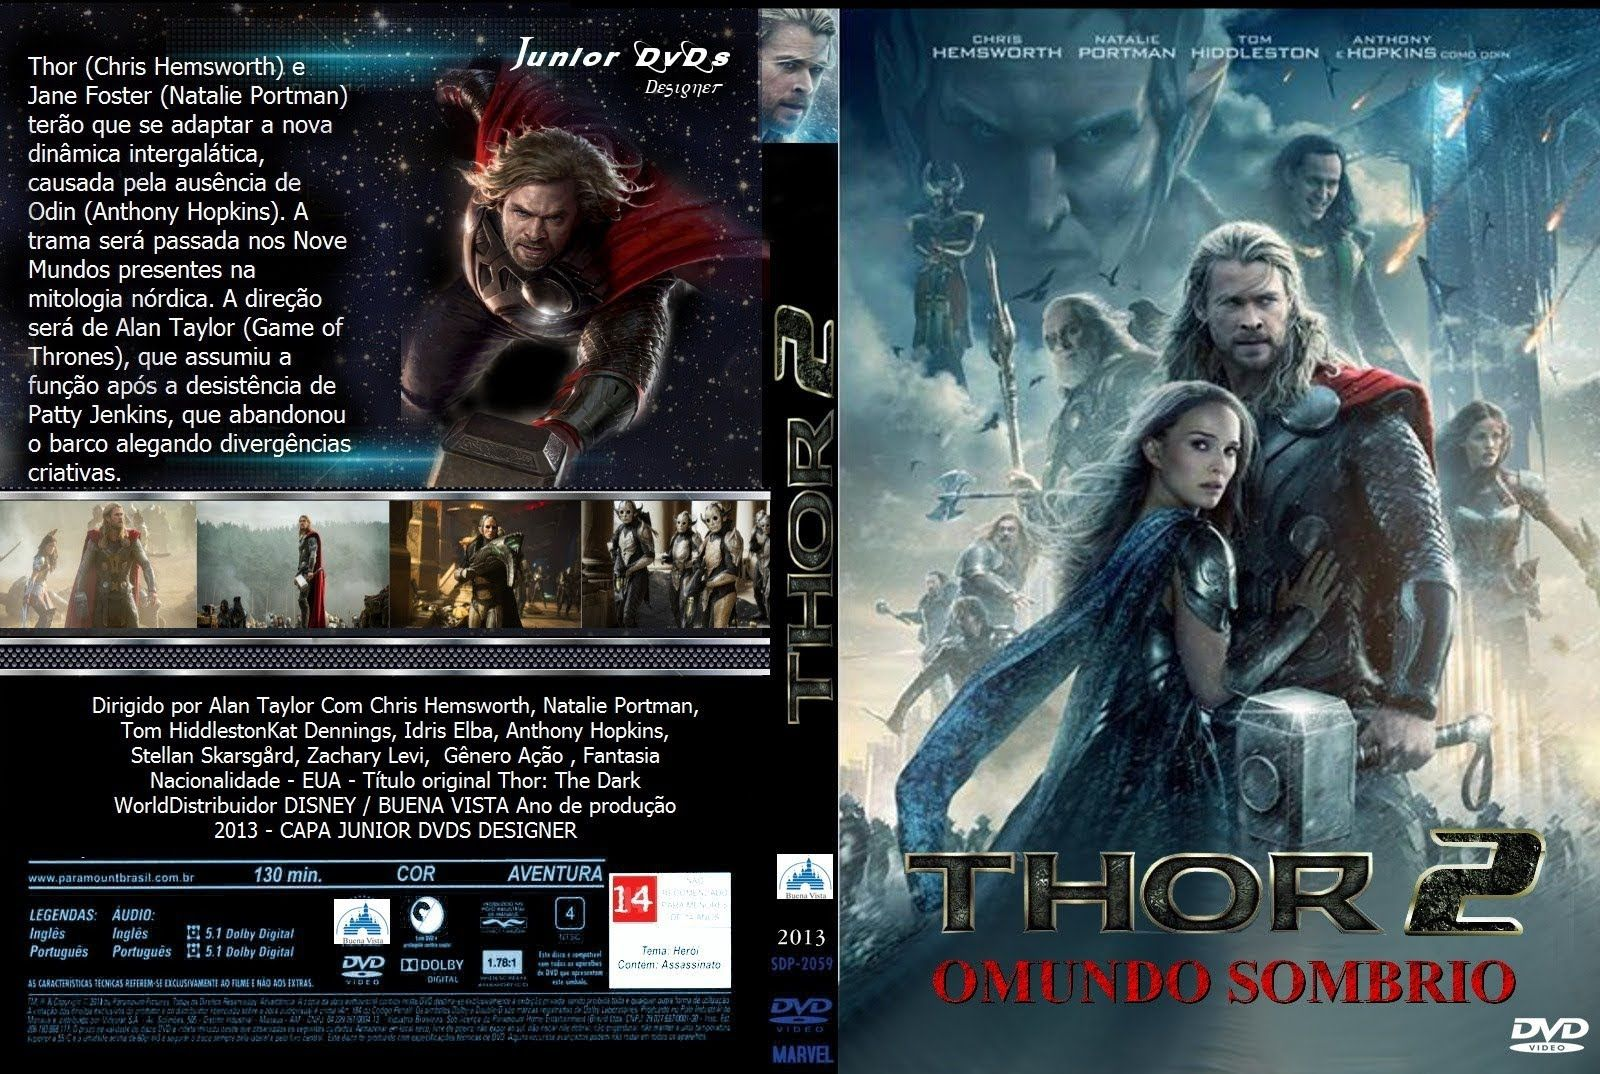 Thor 2 O Mundo Sombrio Filme Completo Dublado Chris Hemsworth Anthony Hopkins Hemsworth